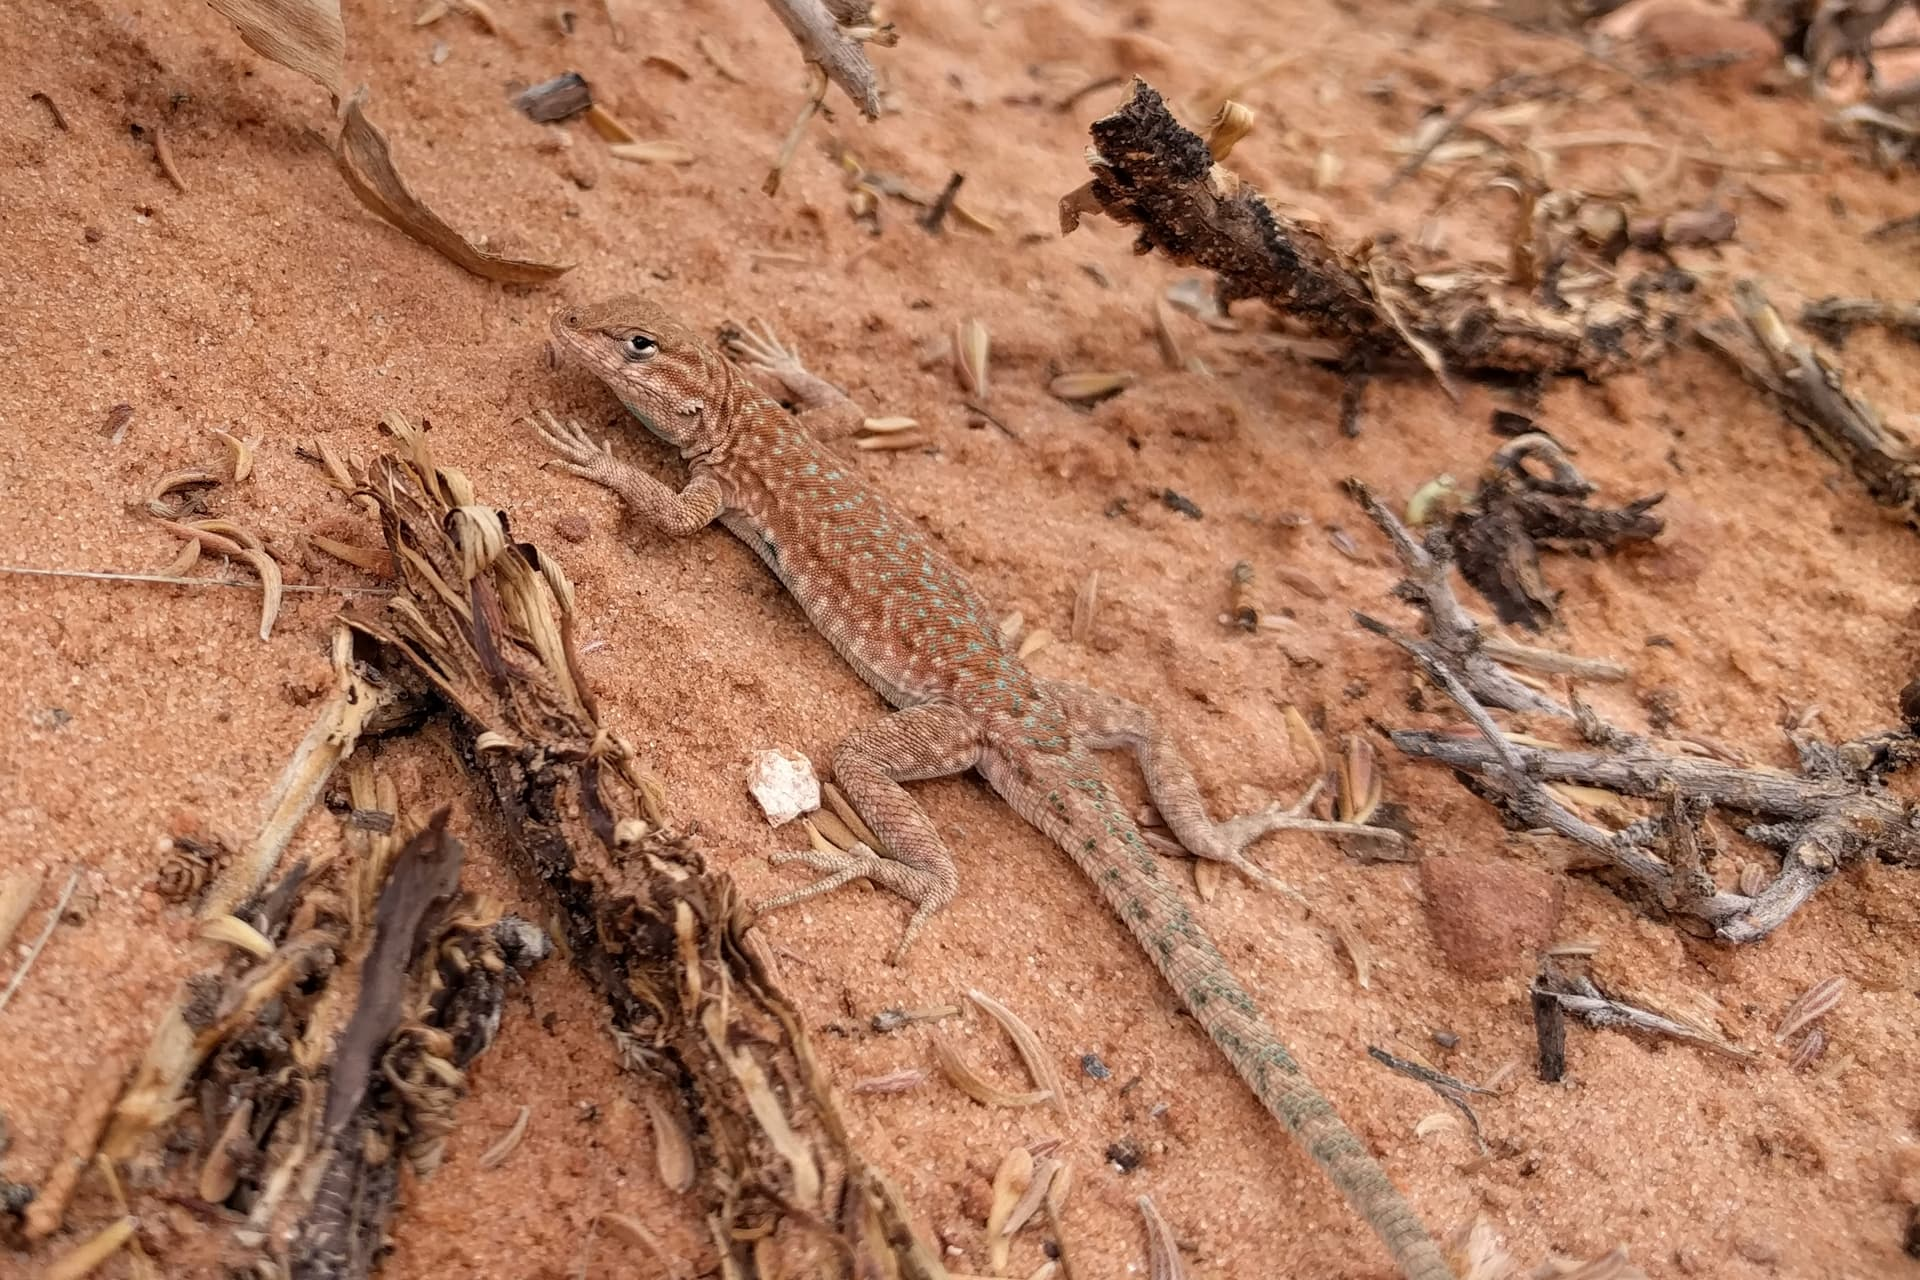 A lizard suns itself in the desert sand. Its coloring closely matches the red sand, except for a stipe of turquoise spots down its back and tail.